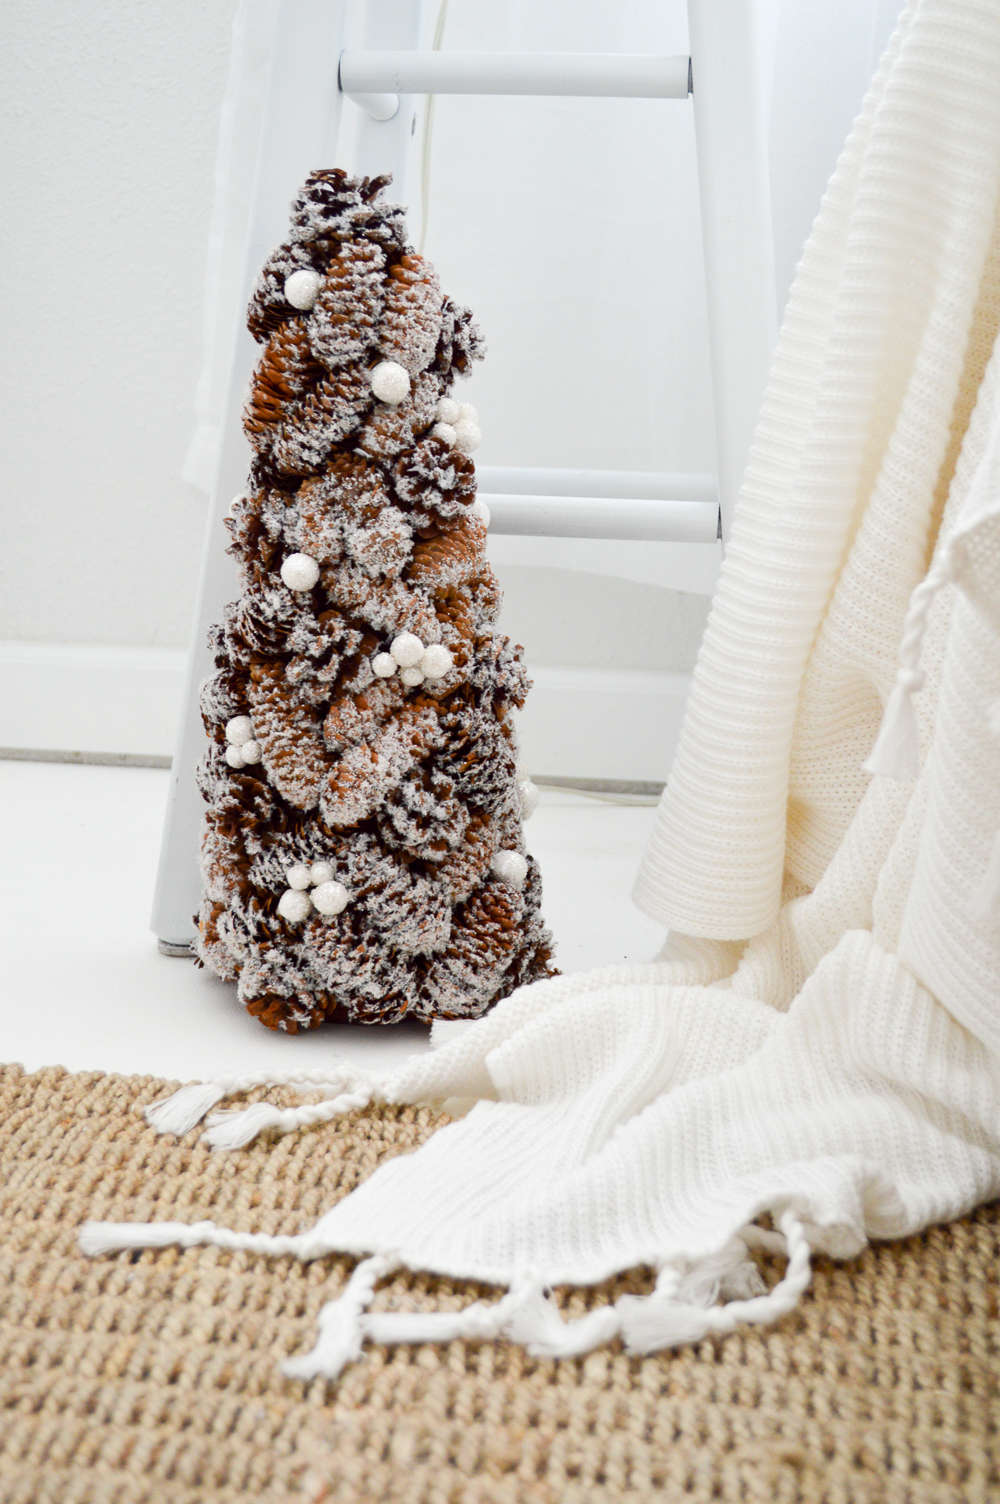 Merry Christmas Guest Bedroom at The Little Cottage foxhollowcottage.com Snowy Pine Cone Holiday Tree